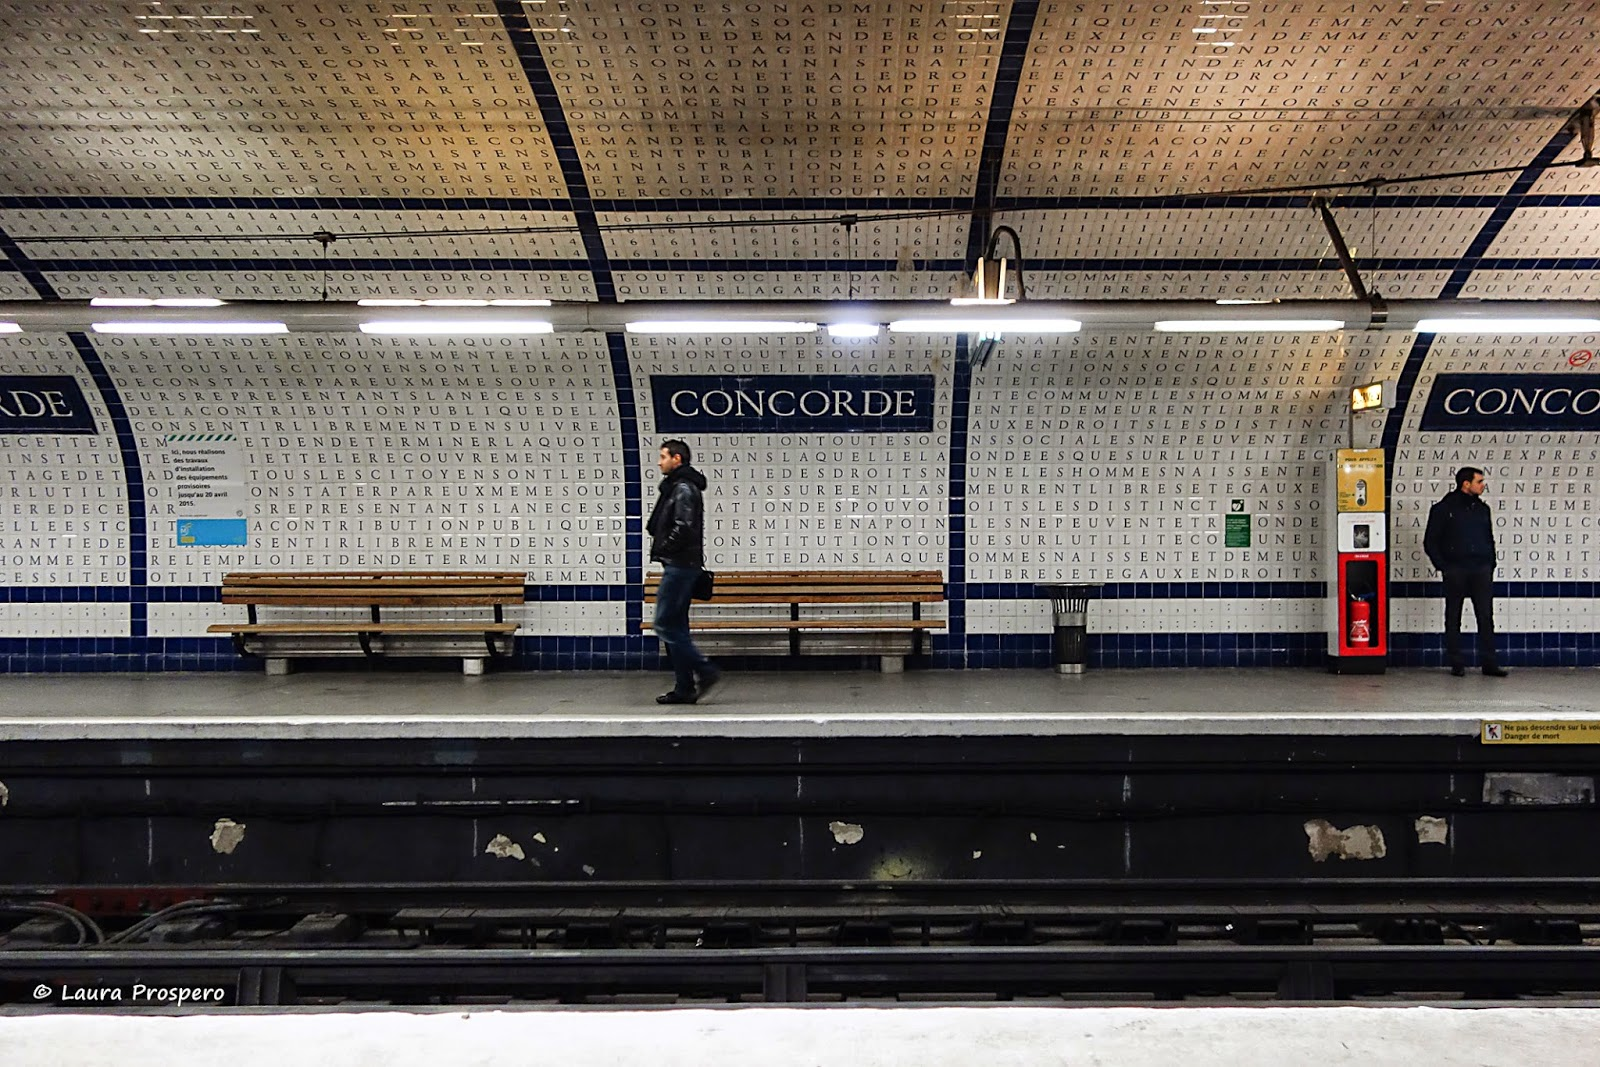 station concorde, paris 2015  © Laura Prospero